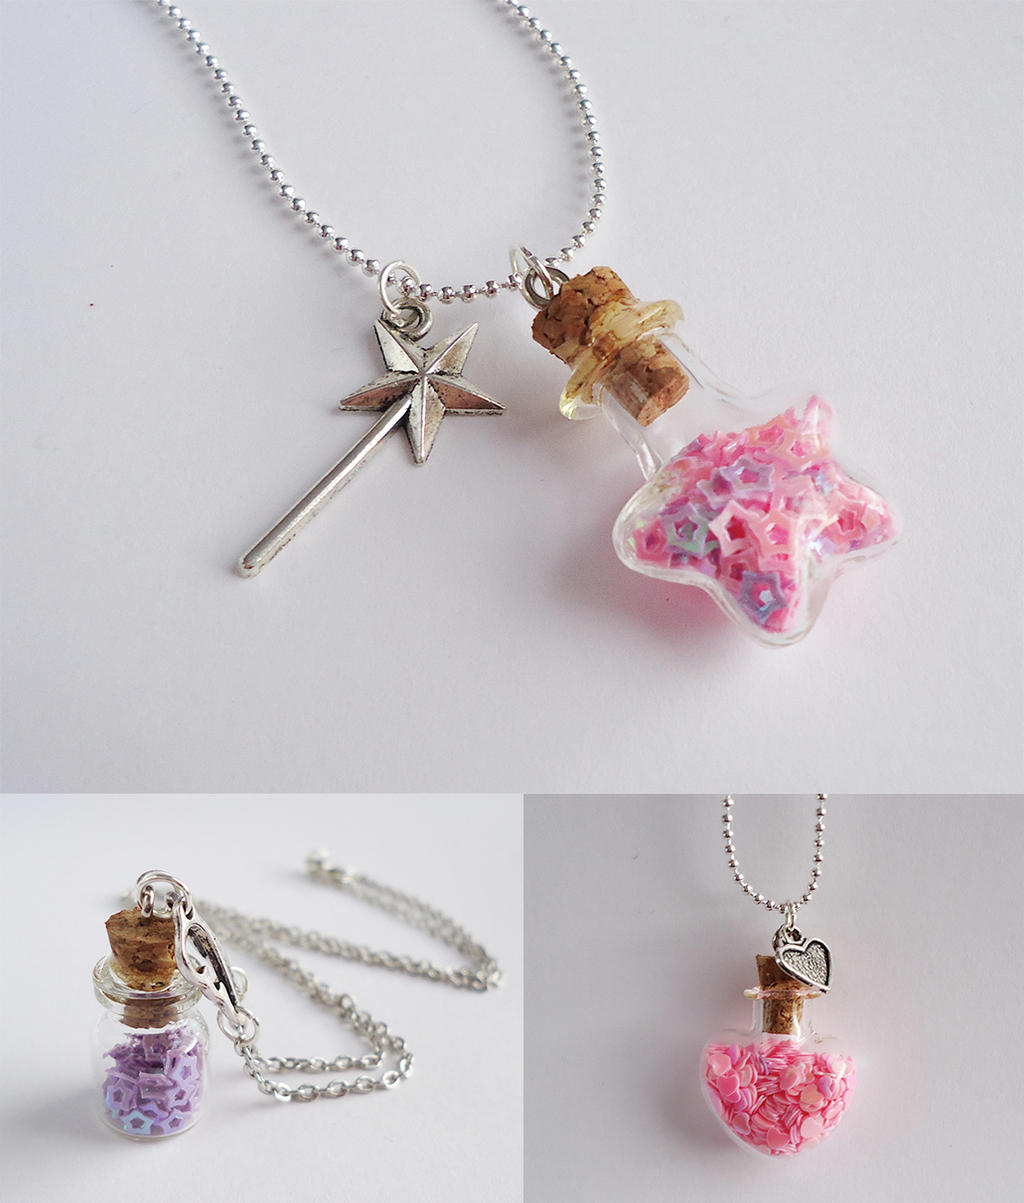 Cutie bottle necklaces by FrozenNote